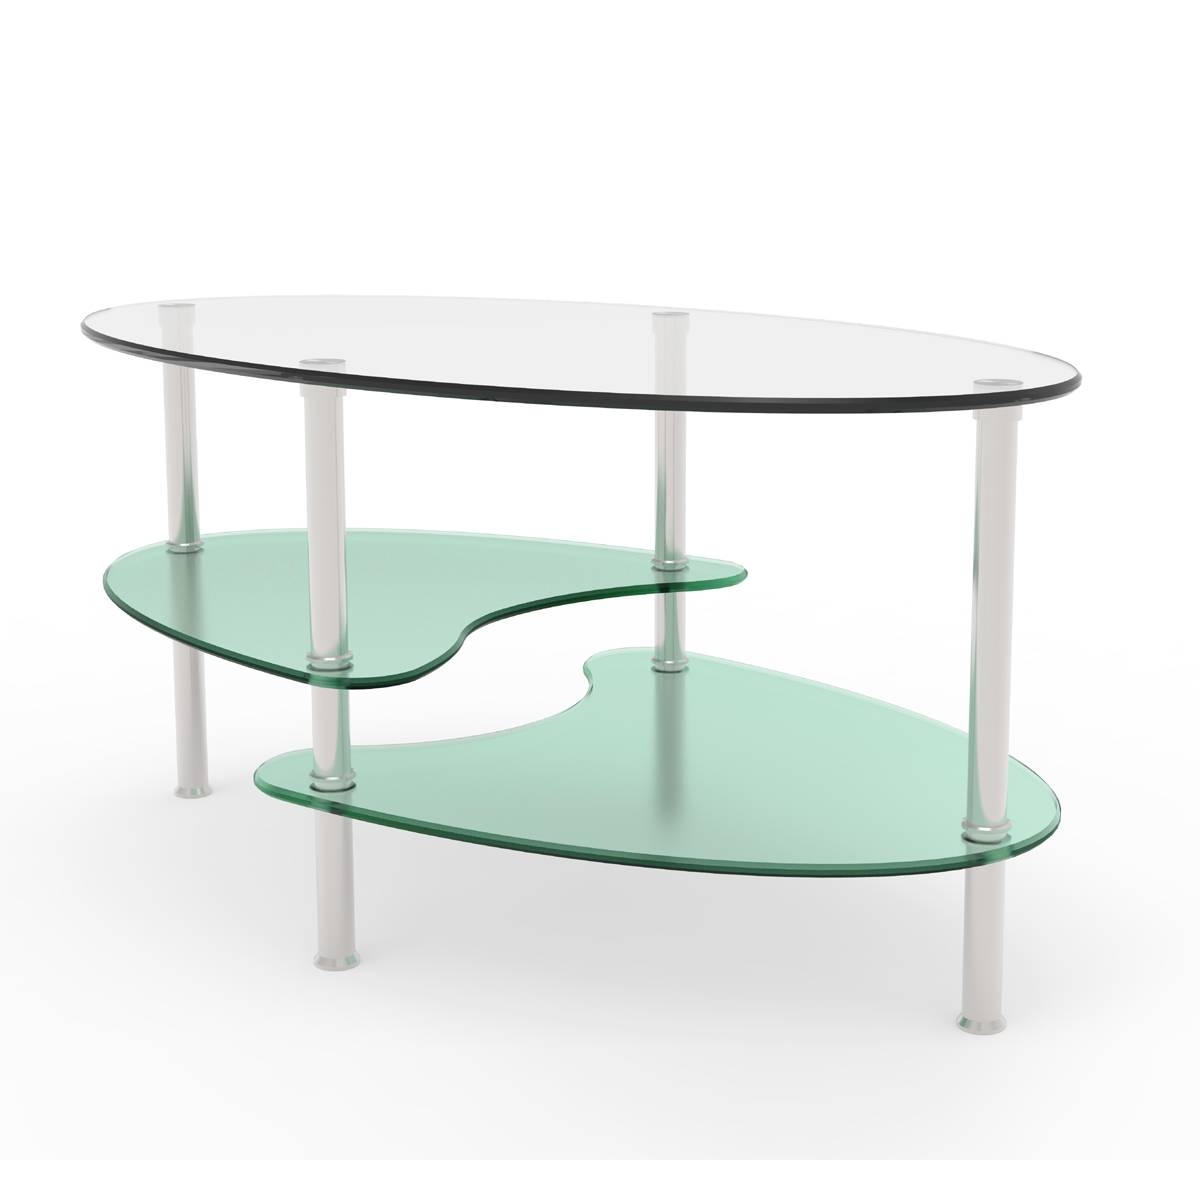 Ryan Rove Fenton 38 Inch Oval Two Tier Glass Coffee Table throughout Oval Glass Coffee Tables (Image 28 of 30)